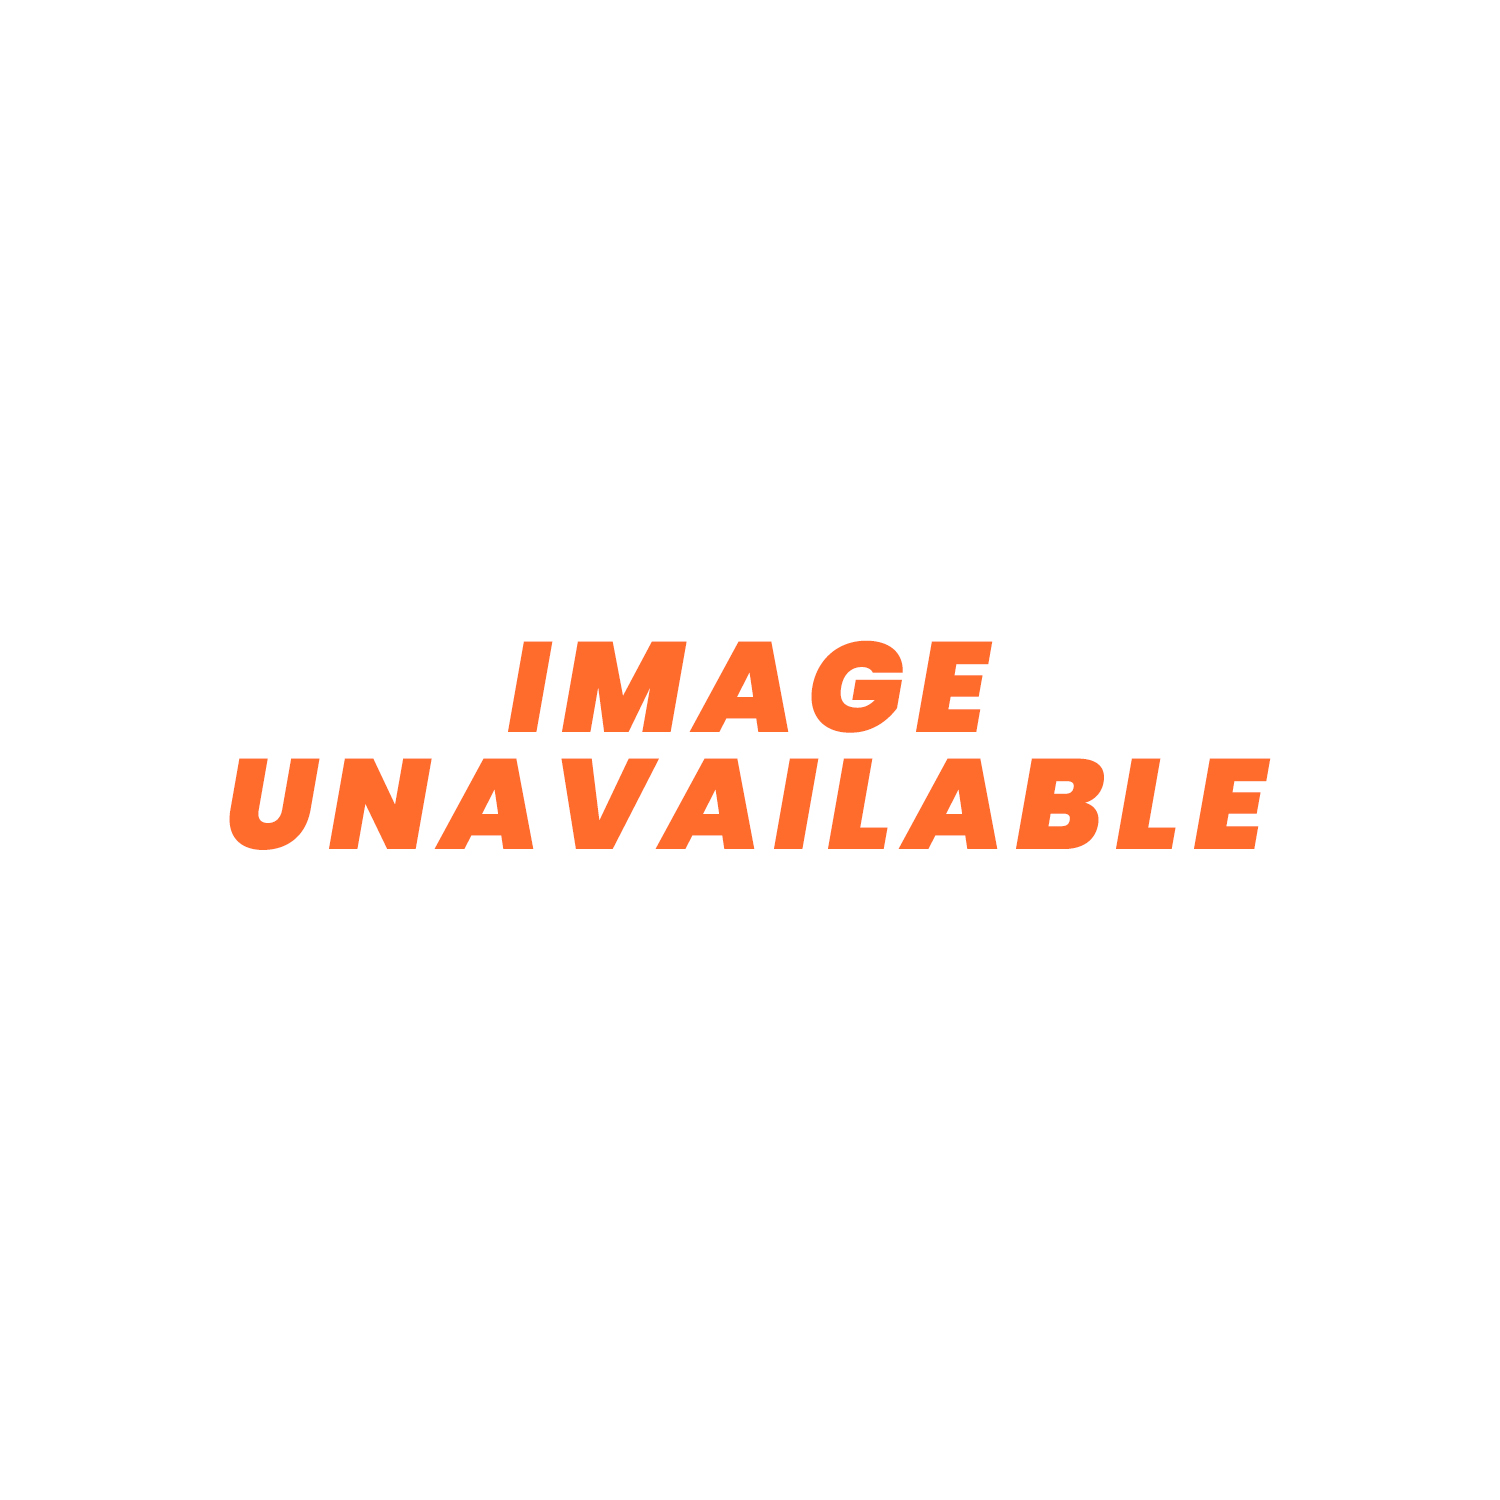 "SPAL Radiator Fan - 7.5"" (190mm) Push VA14-AP11/C-34S 407cfm"